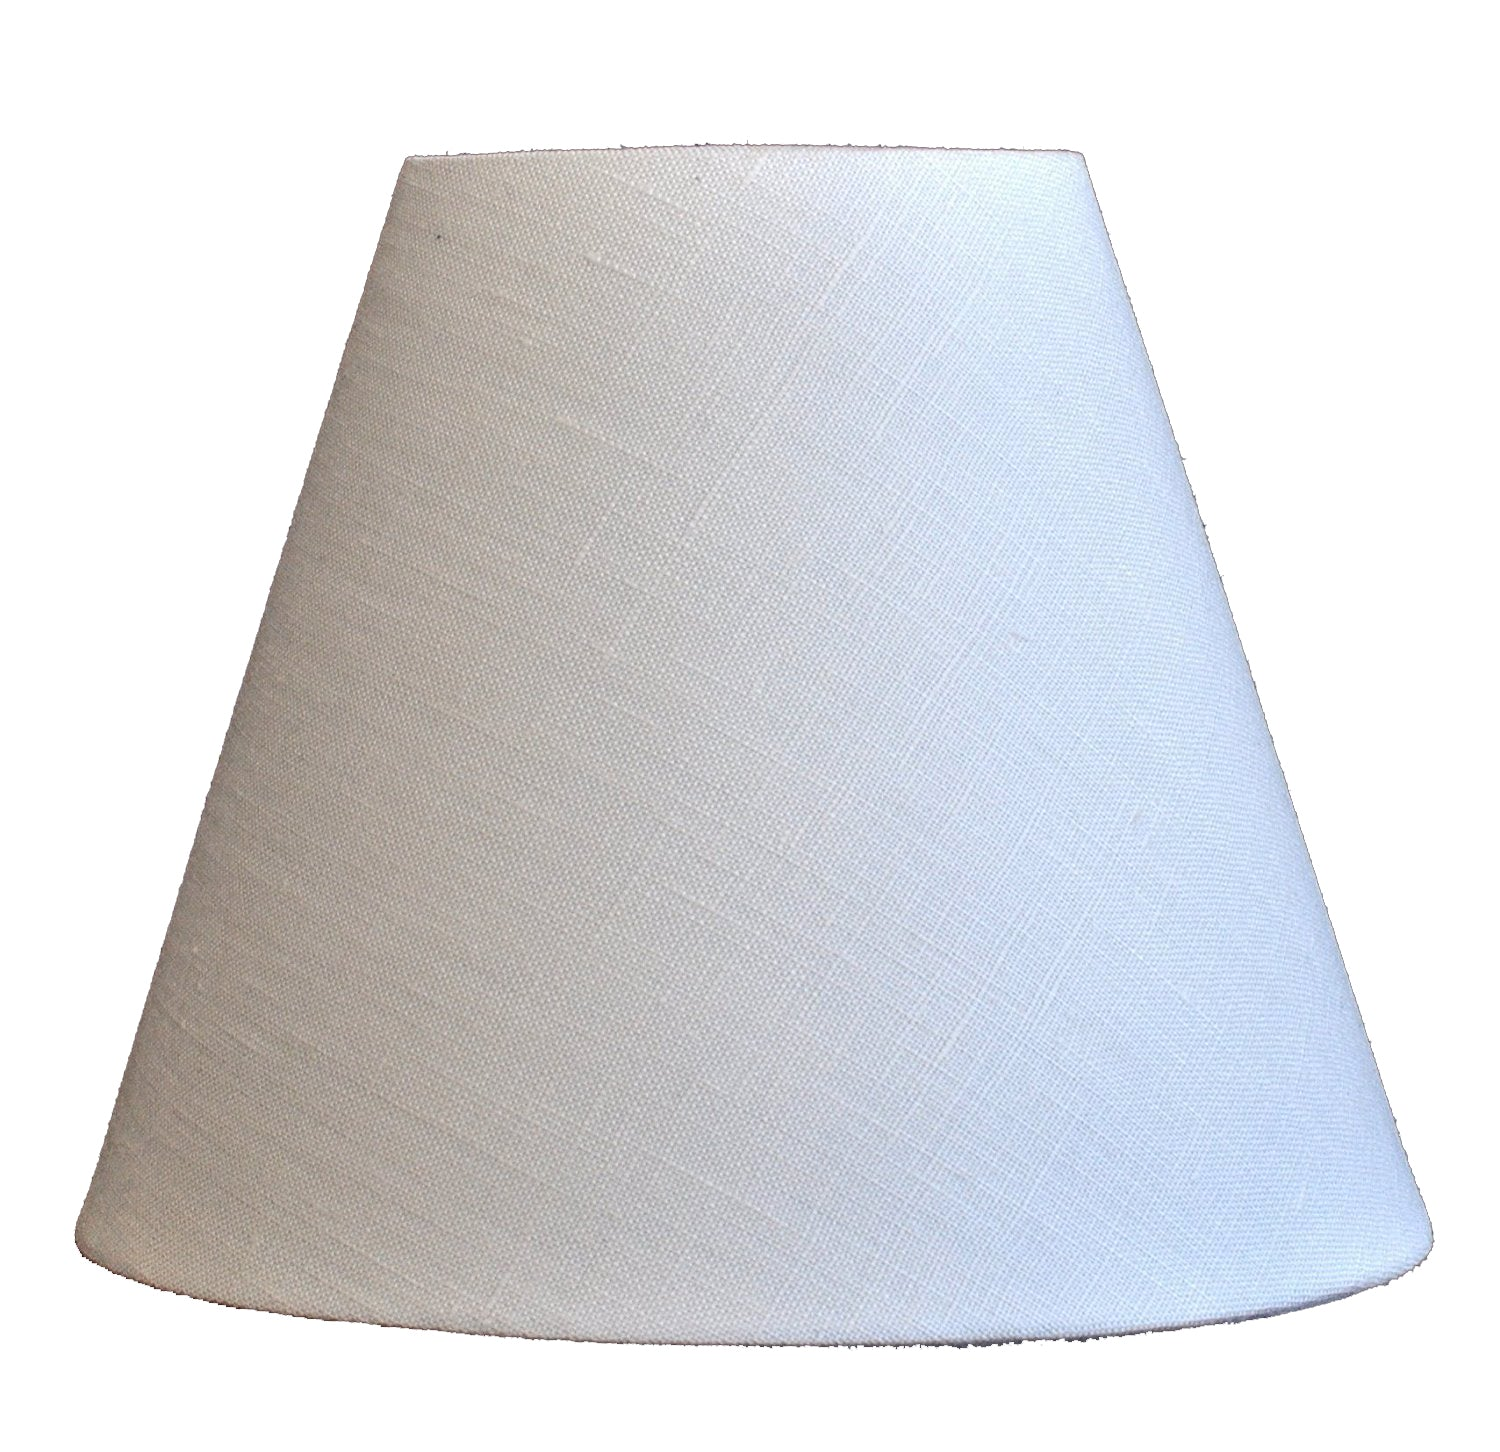 shades top linen lamp cheap large design bedside up lampshade decorative bang